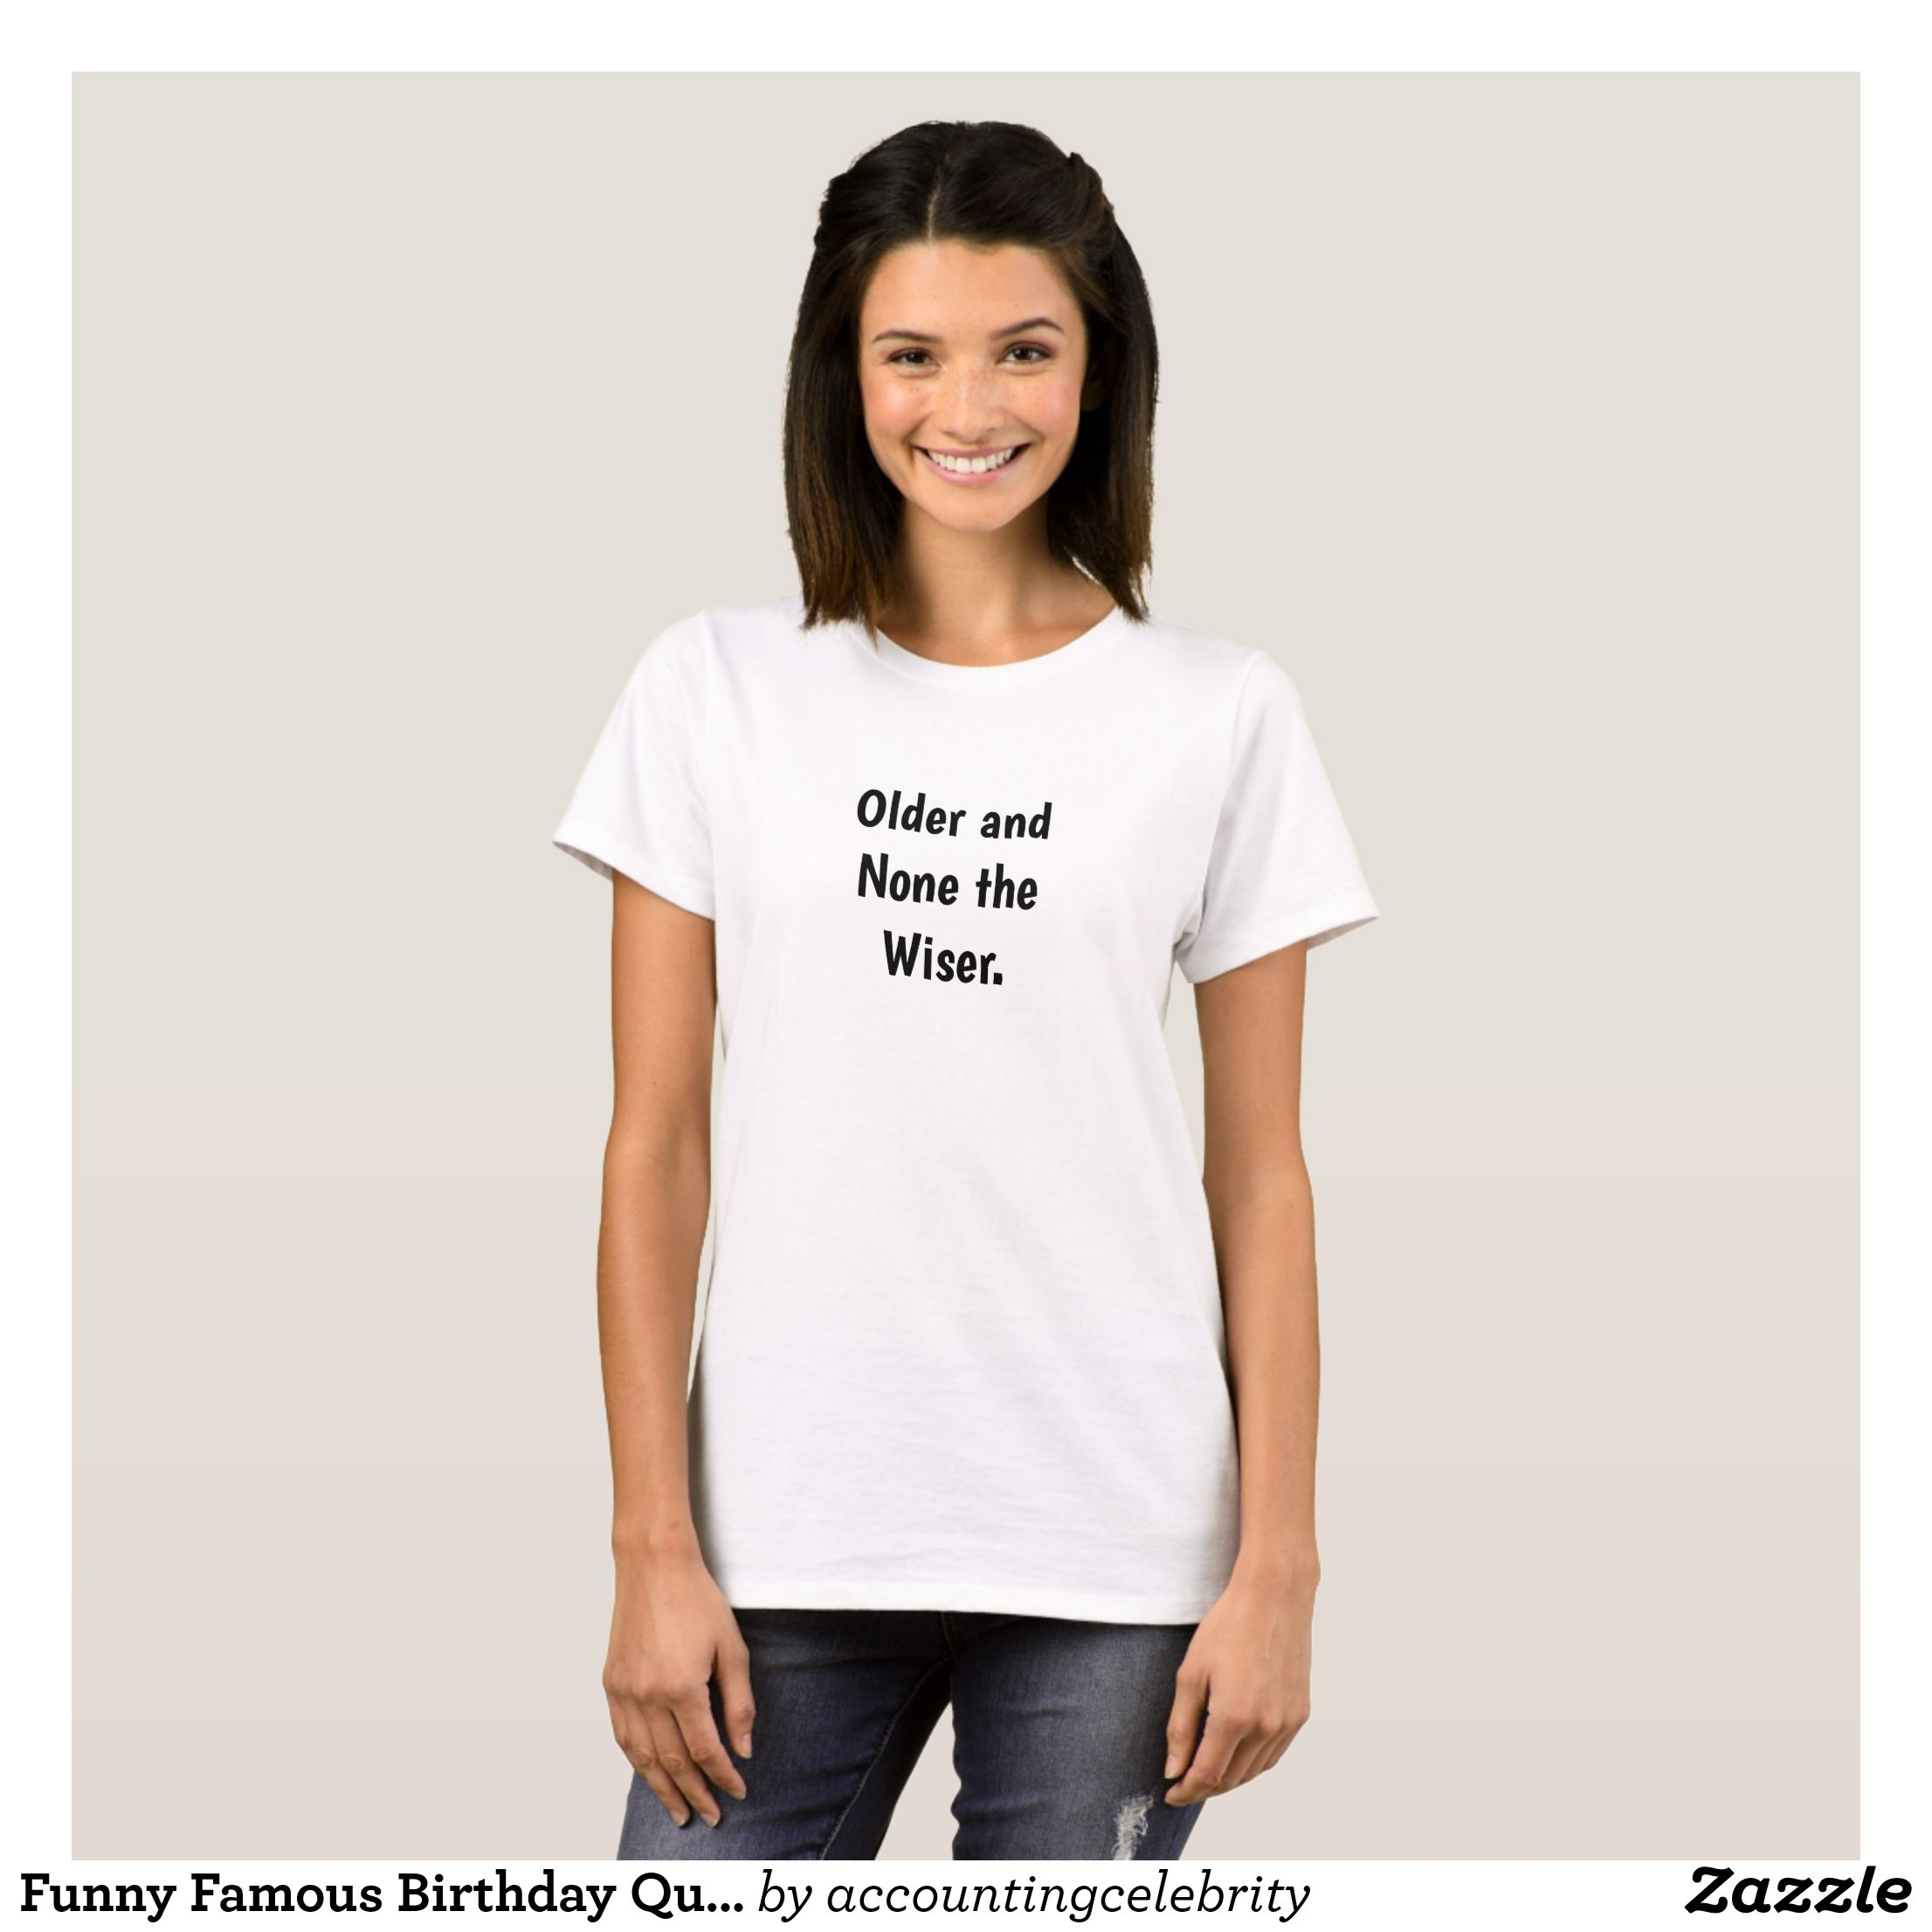 Famous Birthday Quotes Funny Famous Birthday Quote Age Wisdom Joke Tshirt  Famous .